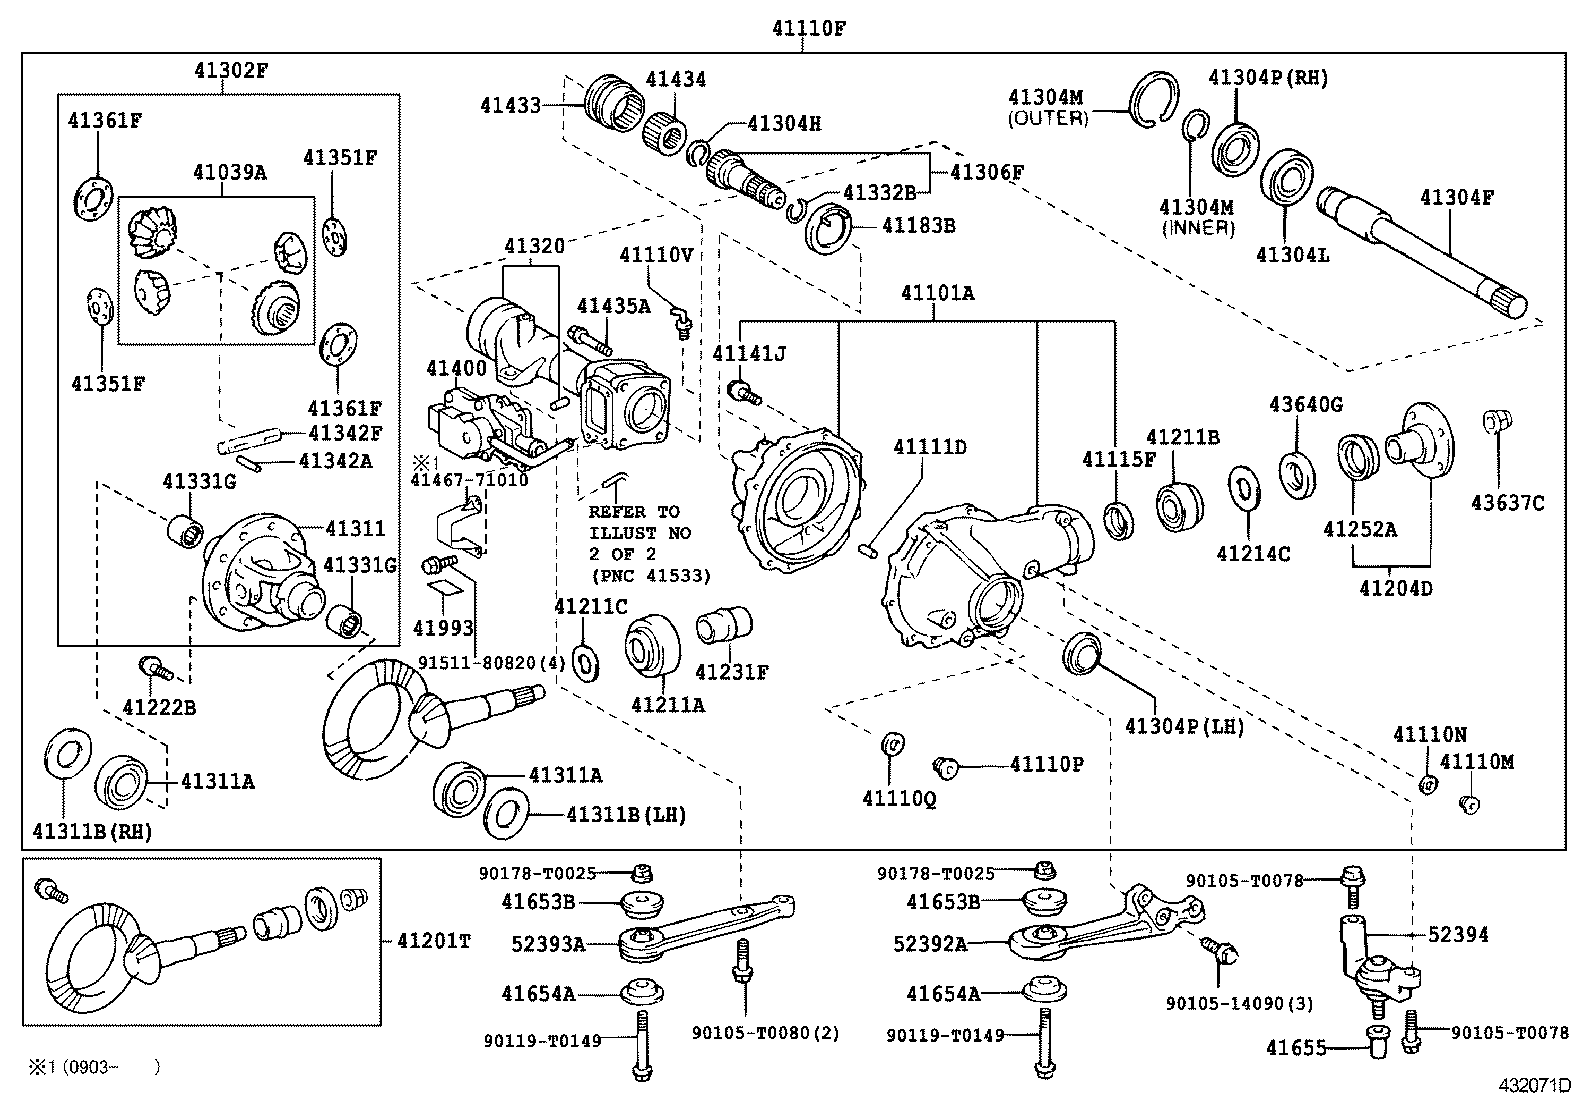 96 chevy truck wiring diagram wedocable 96 chevy truck